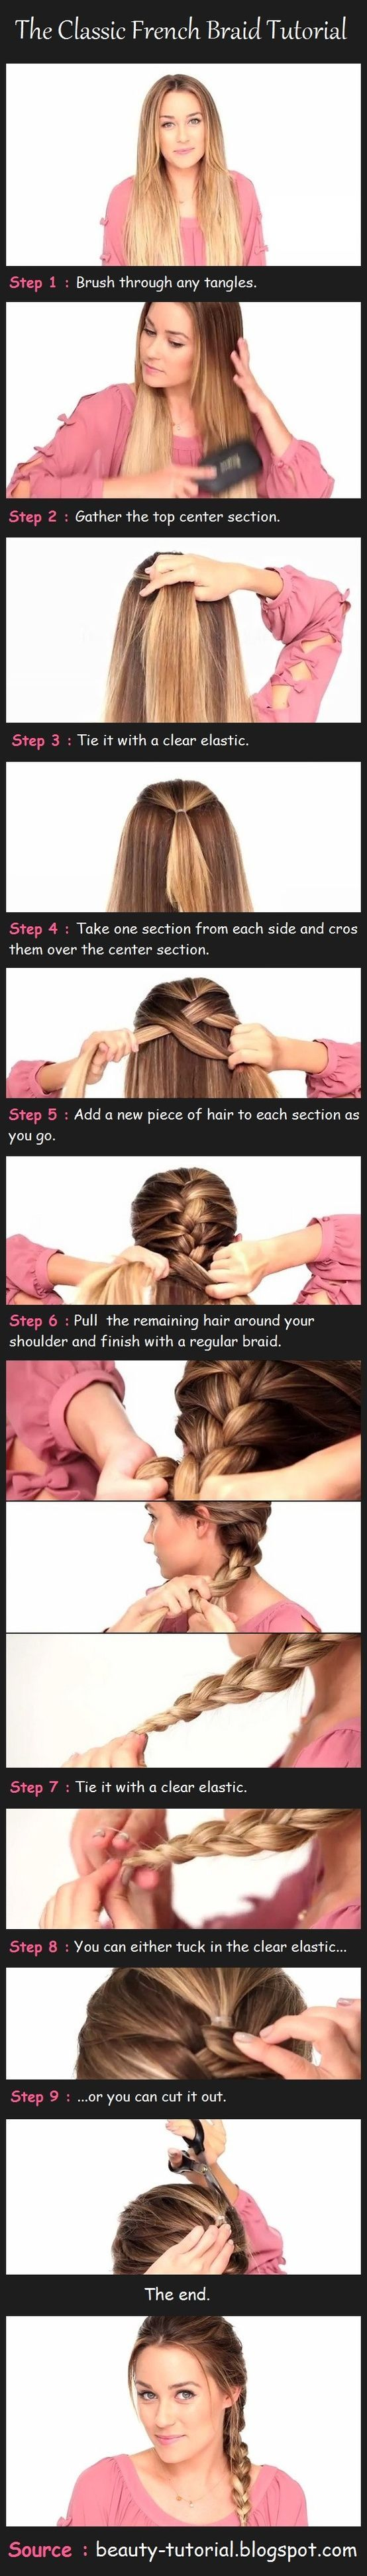 Step by step French braid